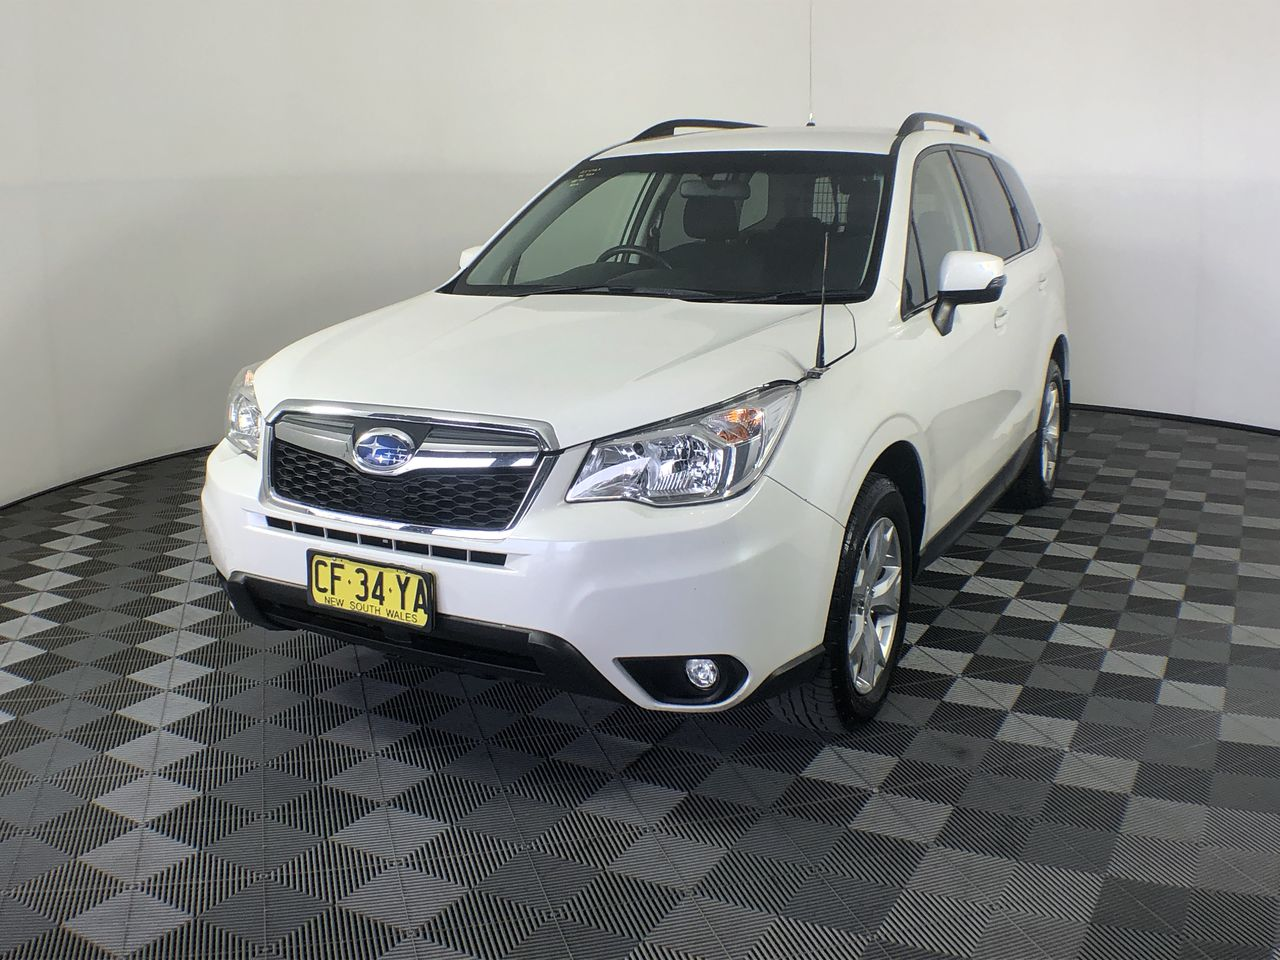 Ex-Government 2015 Subaru Forester 2.0D-L S4 Turbo Diesel CVT Wagon